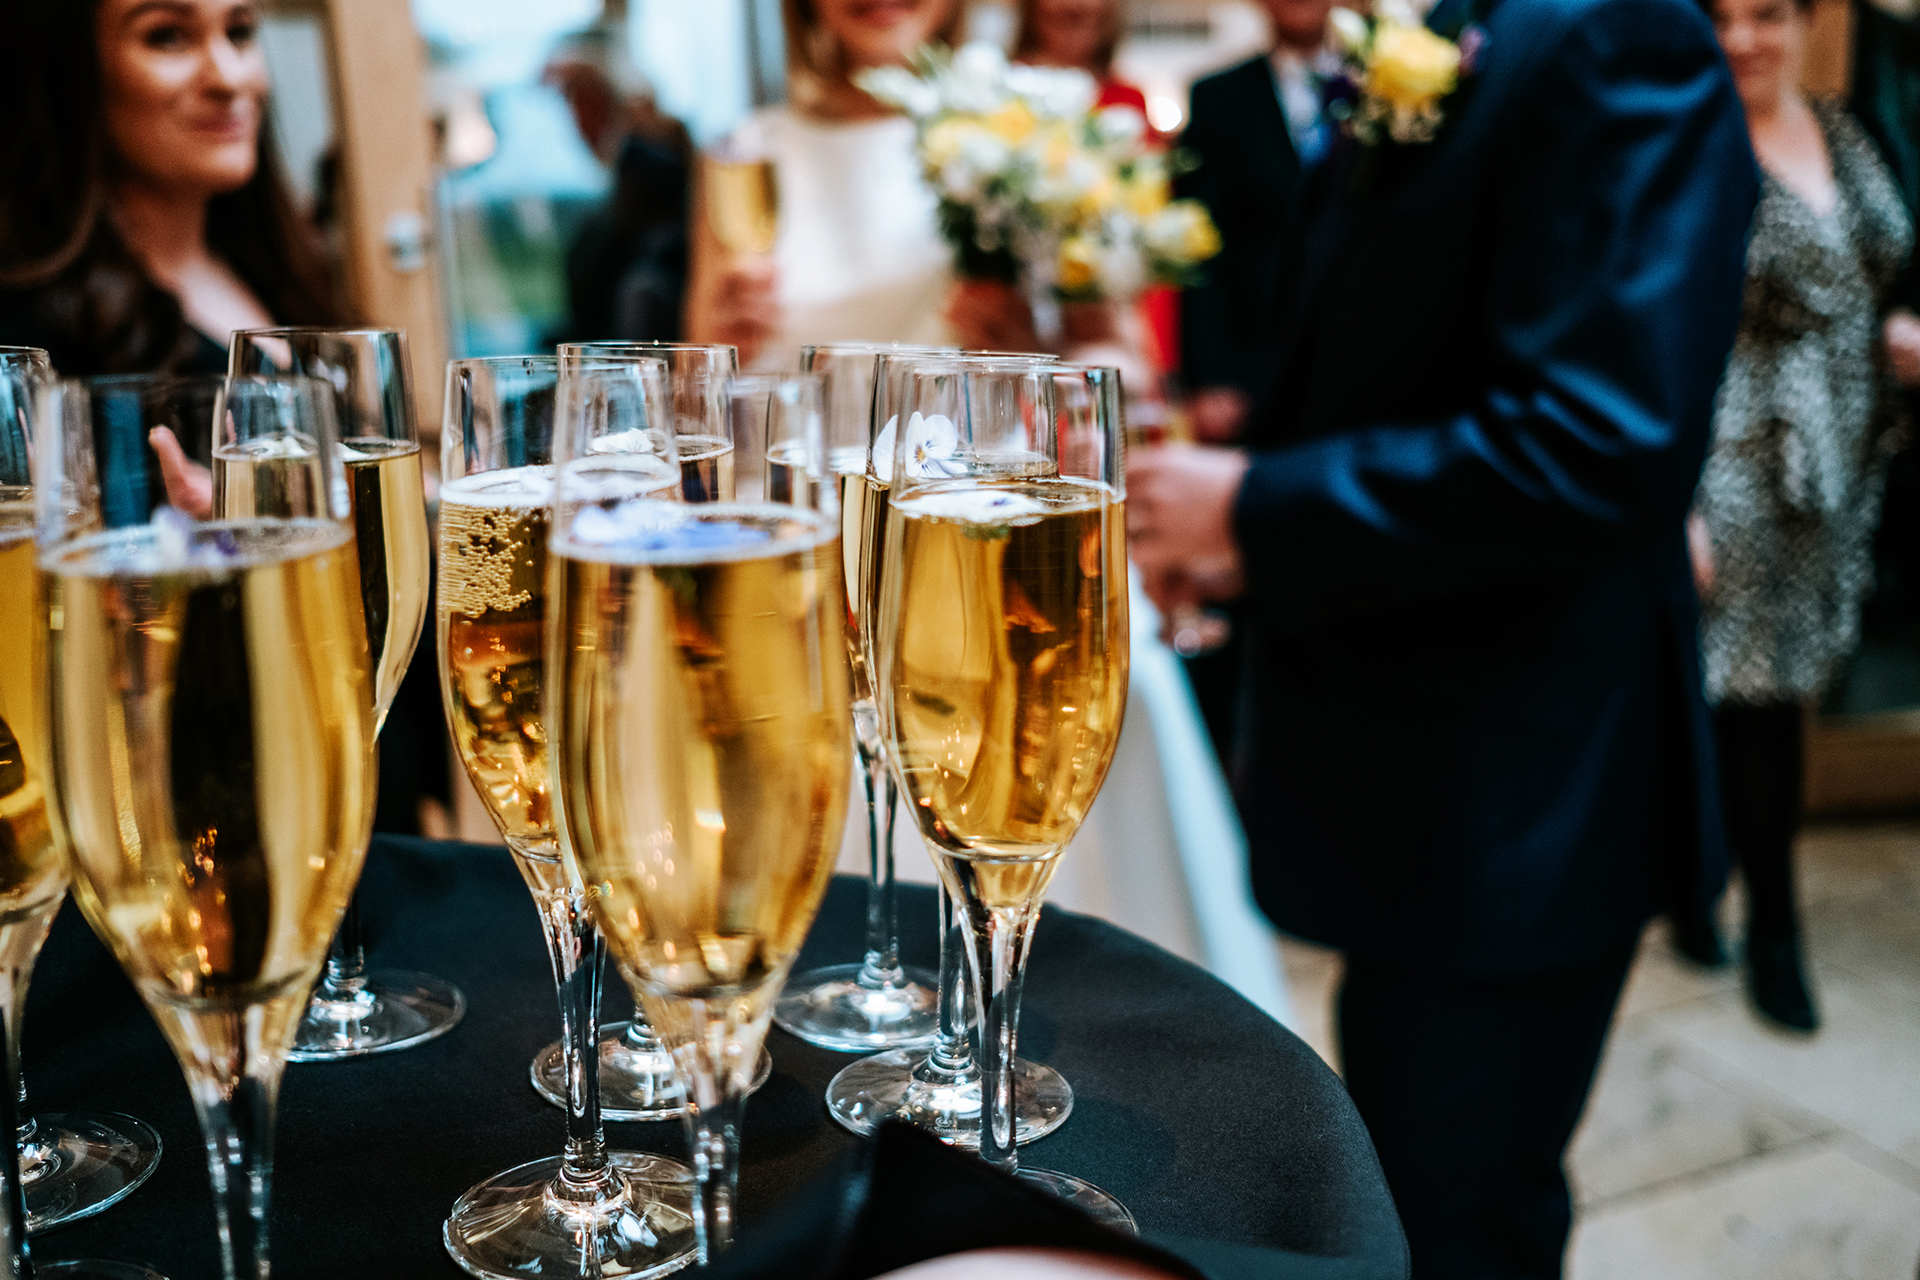 After your wedding ceremony in the Rickety Barn at Bassmead Manor Barns treat your guests to a glass of champagne